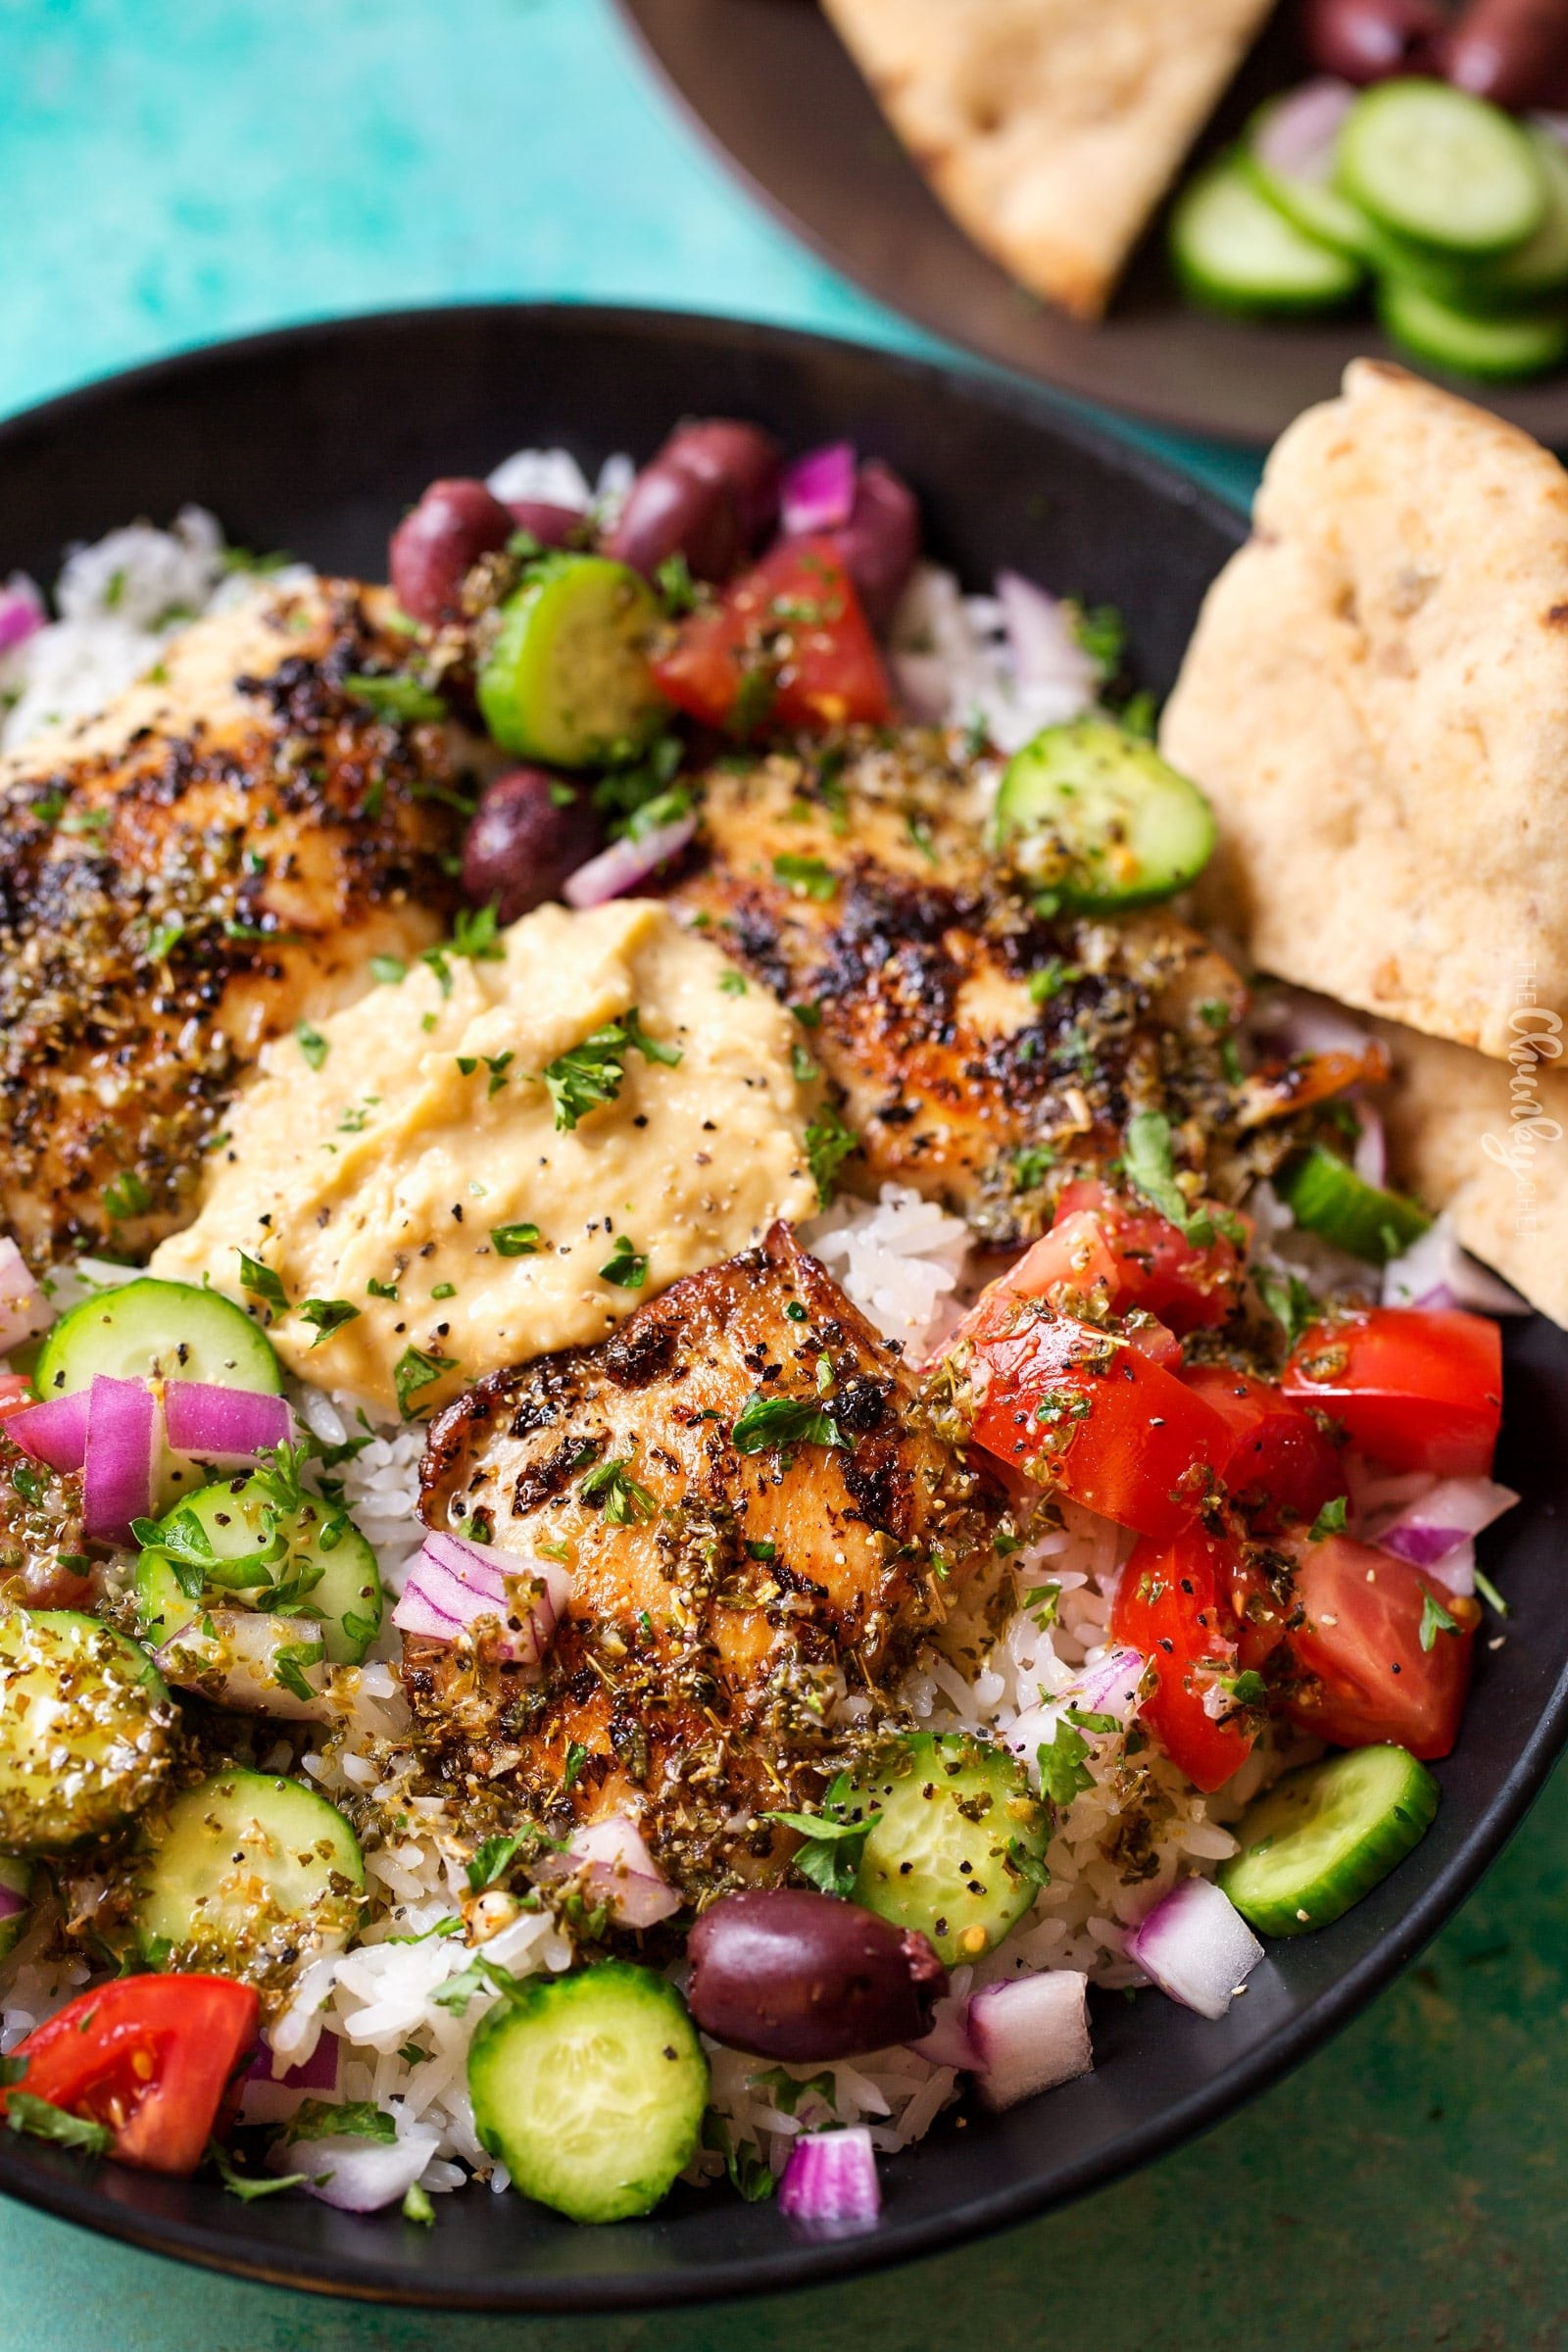 Grab a package of microwaveable rice and top it with grilled Greek chicken and some Mediterranean veggies like cucumber, tomatoes, and red onion. Get the recipe.